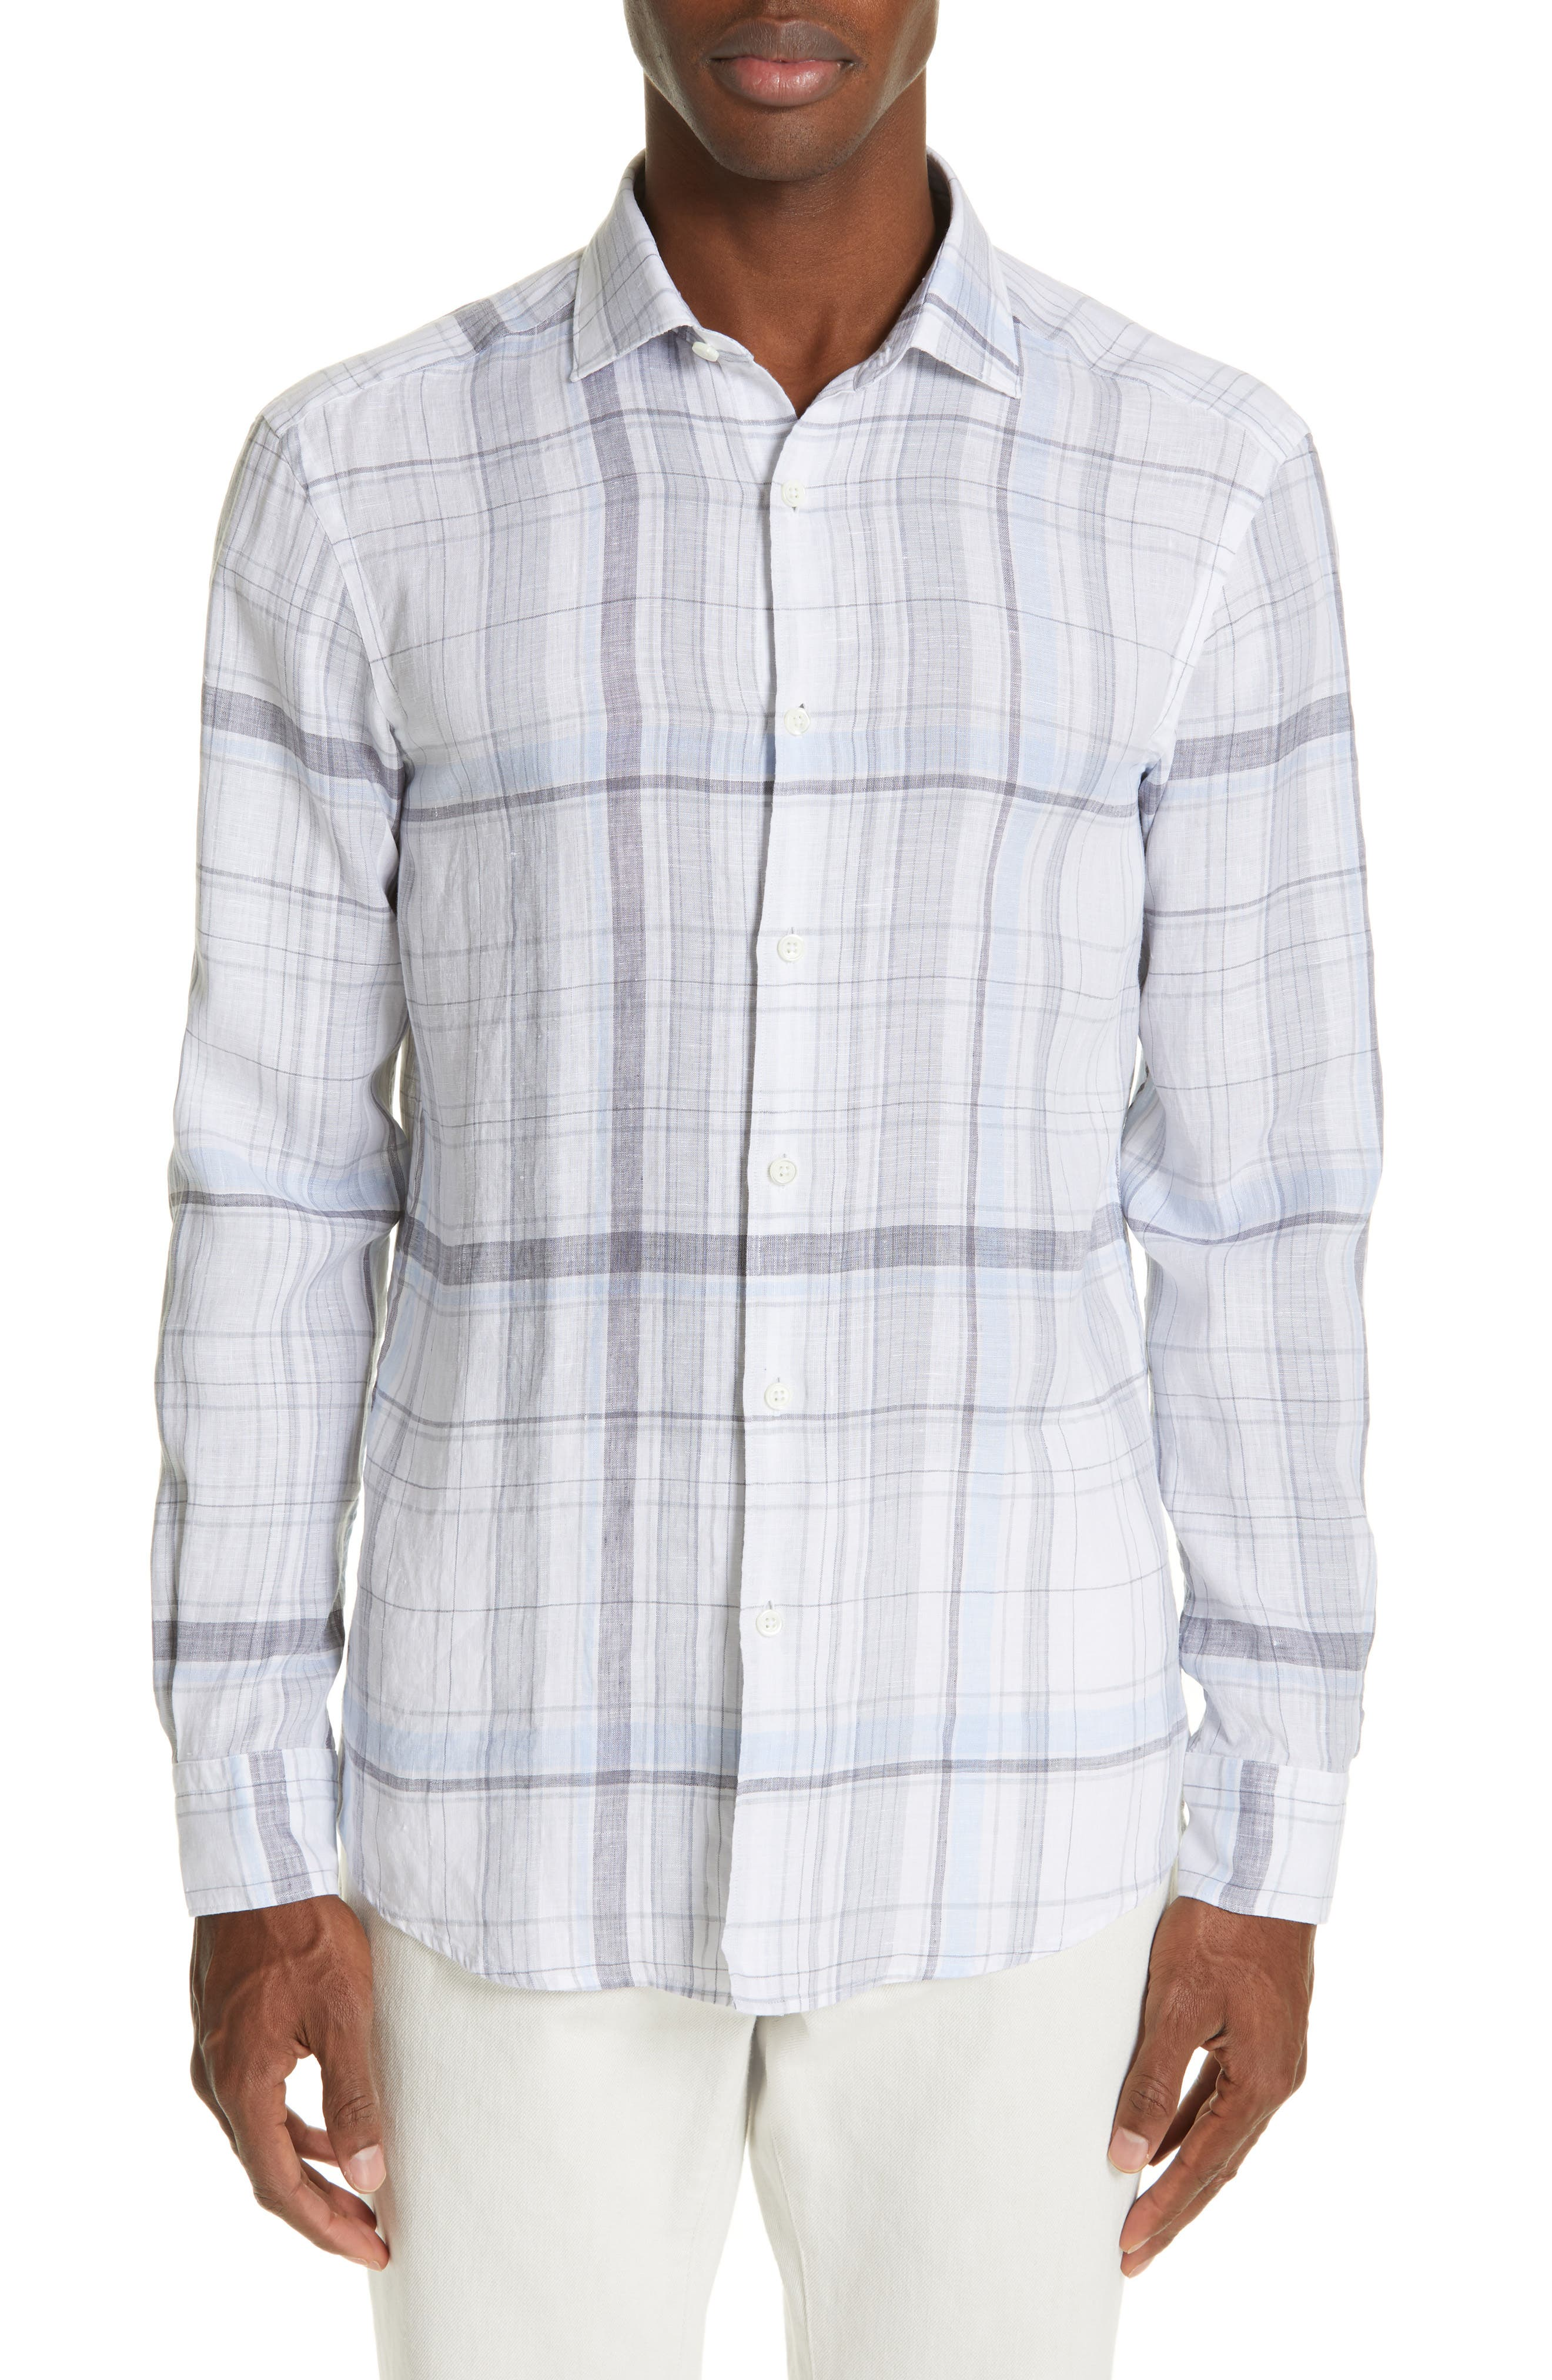 ERMENEGILDO ZEGNA, Regular Fit Plaid Linen Sport Shirt, Main thumbnail 1, color, BLUE